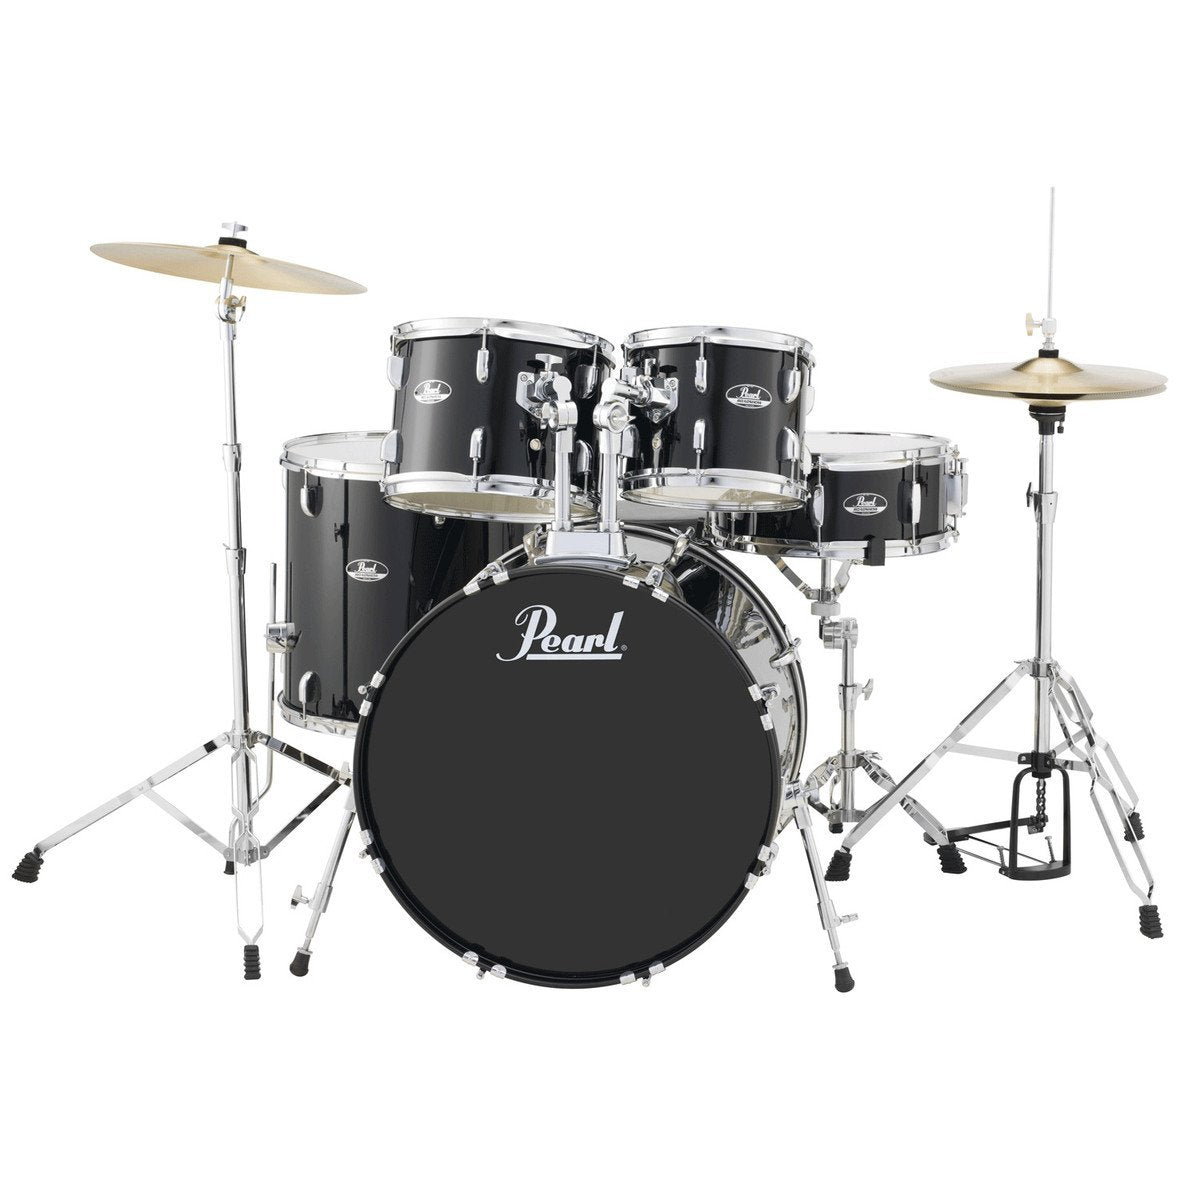 Pearl Roadshow-X 22-Inch 5-Piece Fusion Drum Kit Pack (Jet Black)